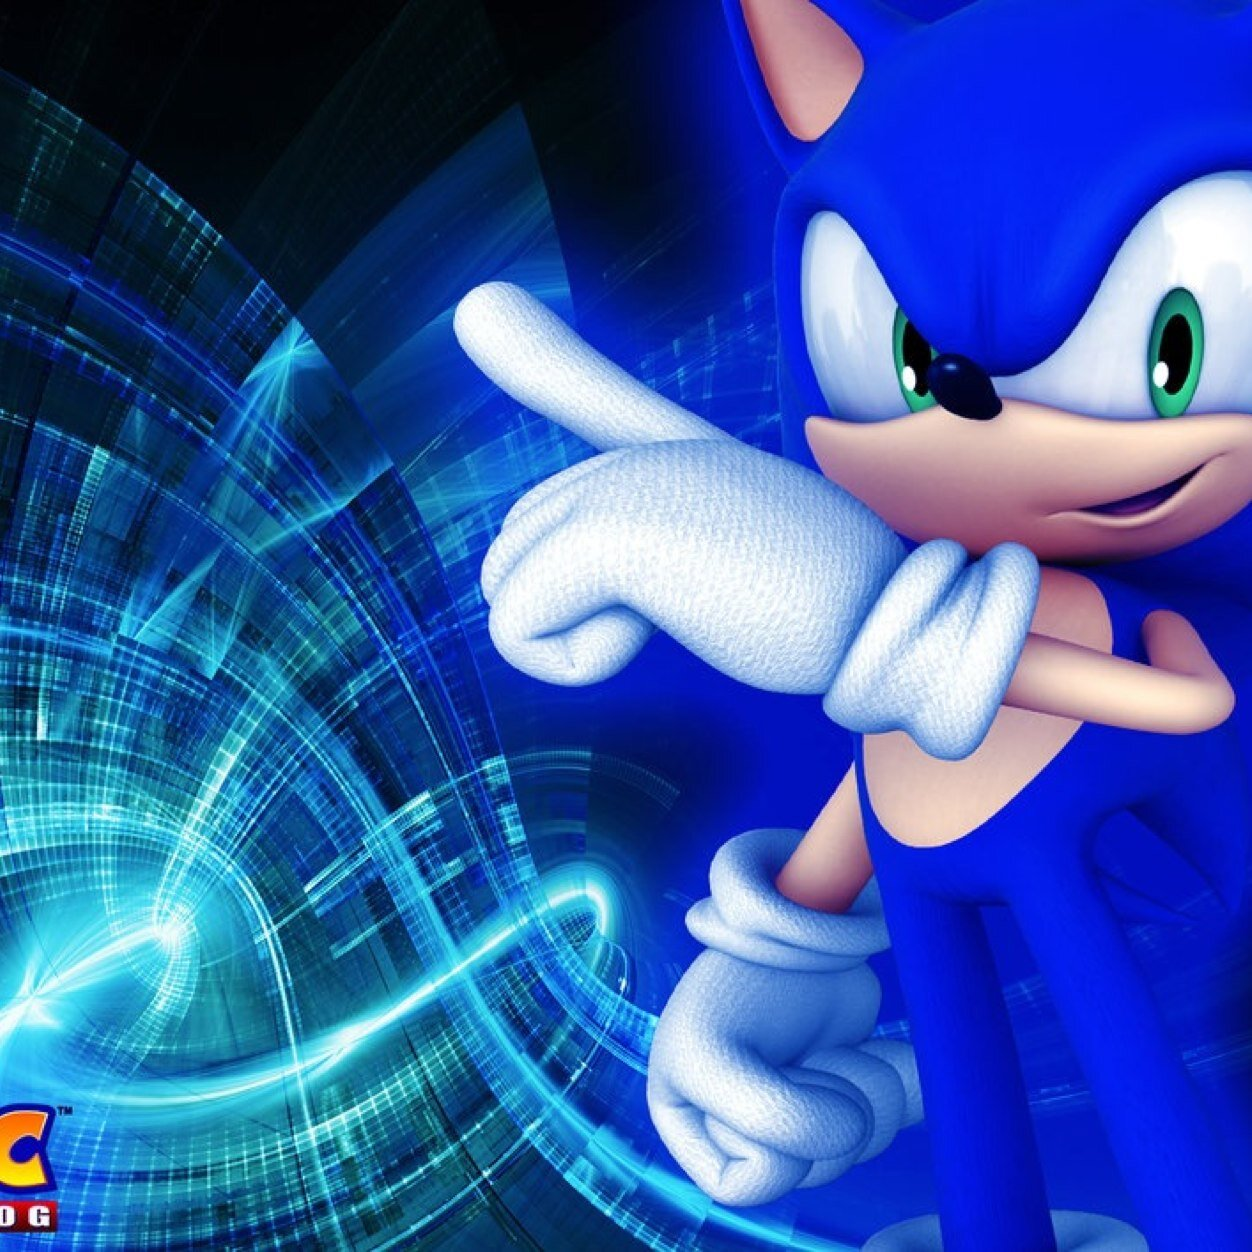 Sonic The Hedgehog On Twitter Super Evil Sonic Classic Sonic Dark Sonic Sega Sonic Super Evil Http T Co F4twopqykn